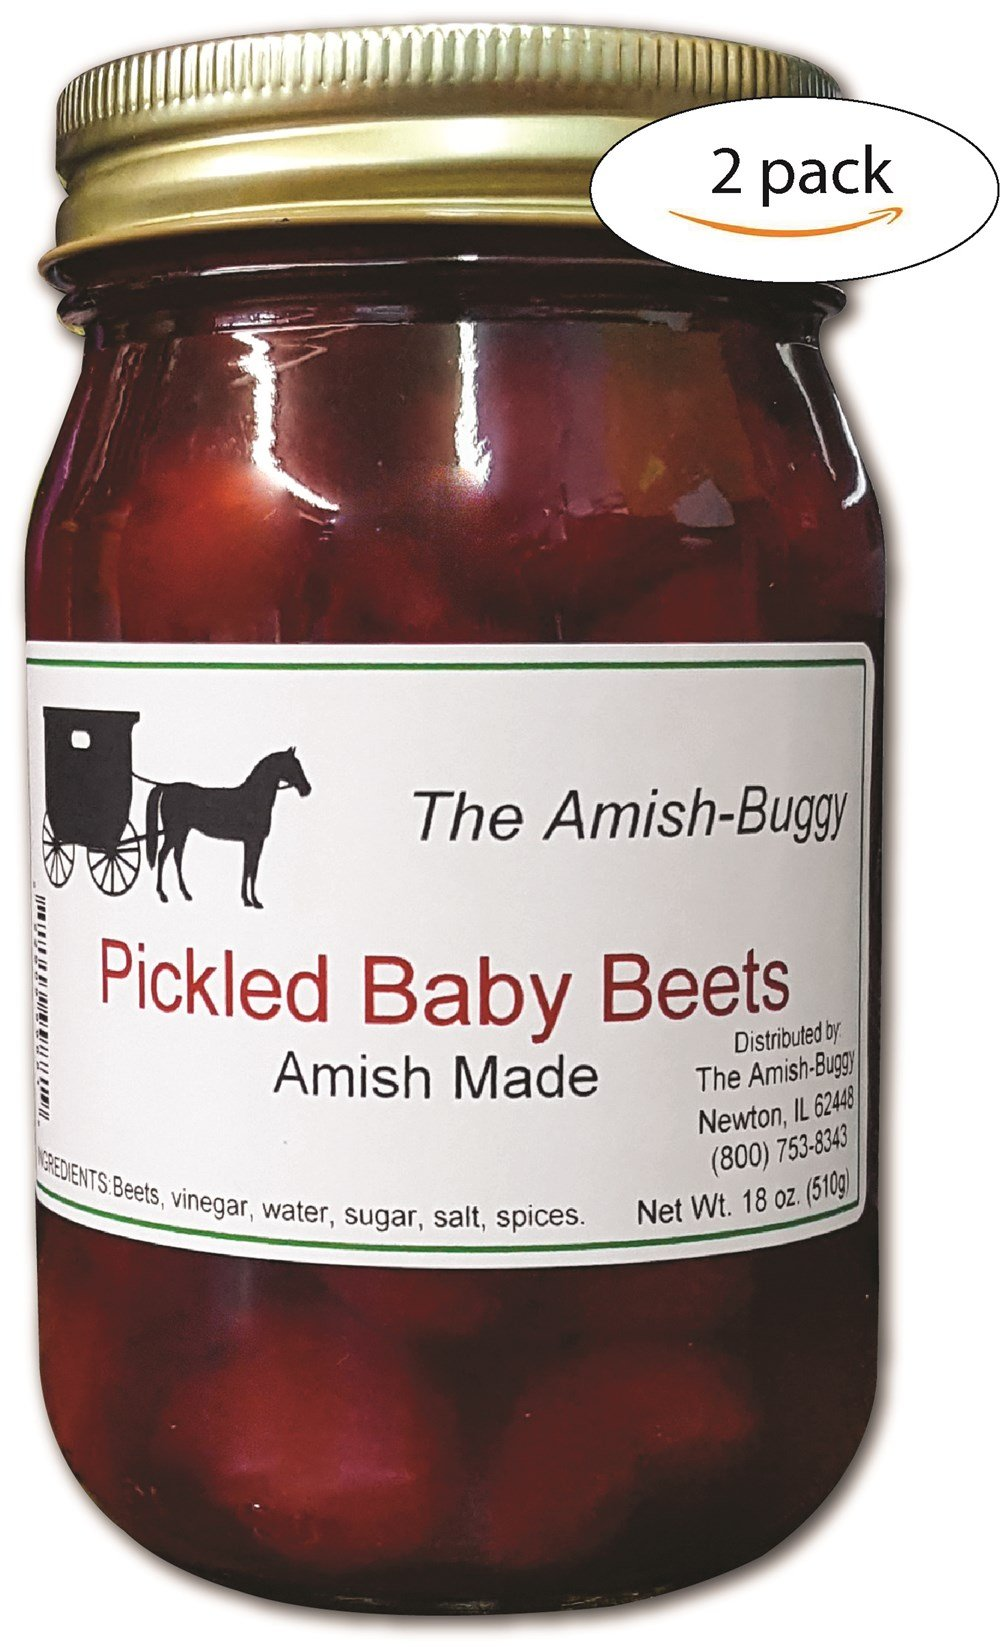 The Amish-Buggy Pickled Baby Beets, 2 jars 18 oz